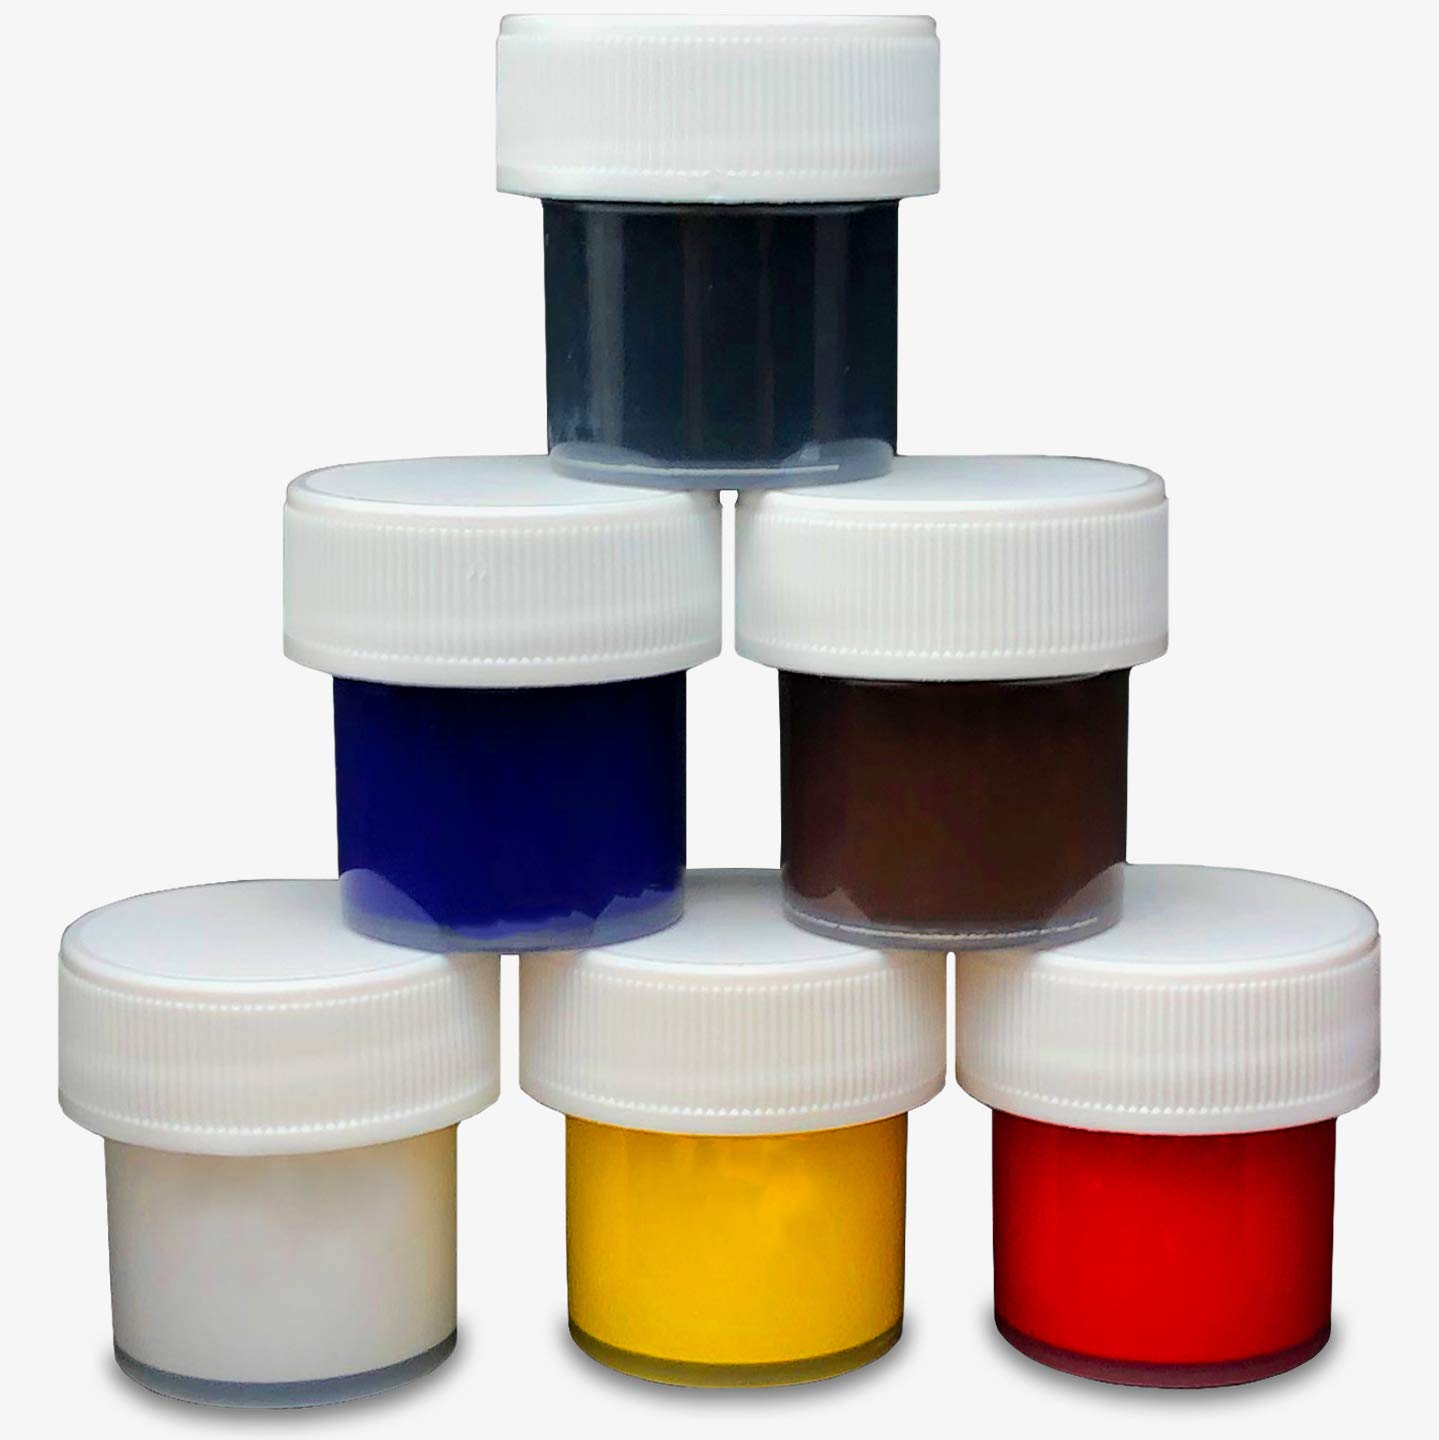 GELCOAT Pigment KIT - Mix with Polyester Resin, Gel Coat for Color  Matching, Scratch and Blending: Amazon.in: Industrial & Scientific